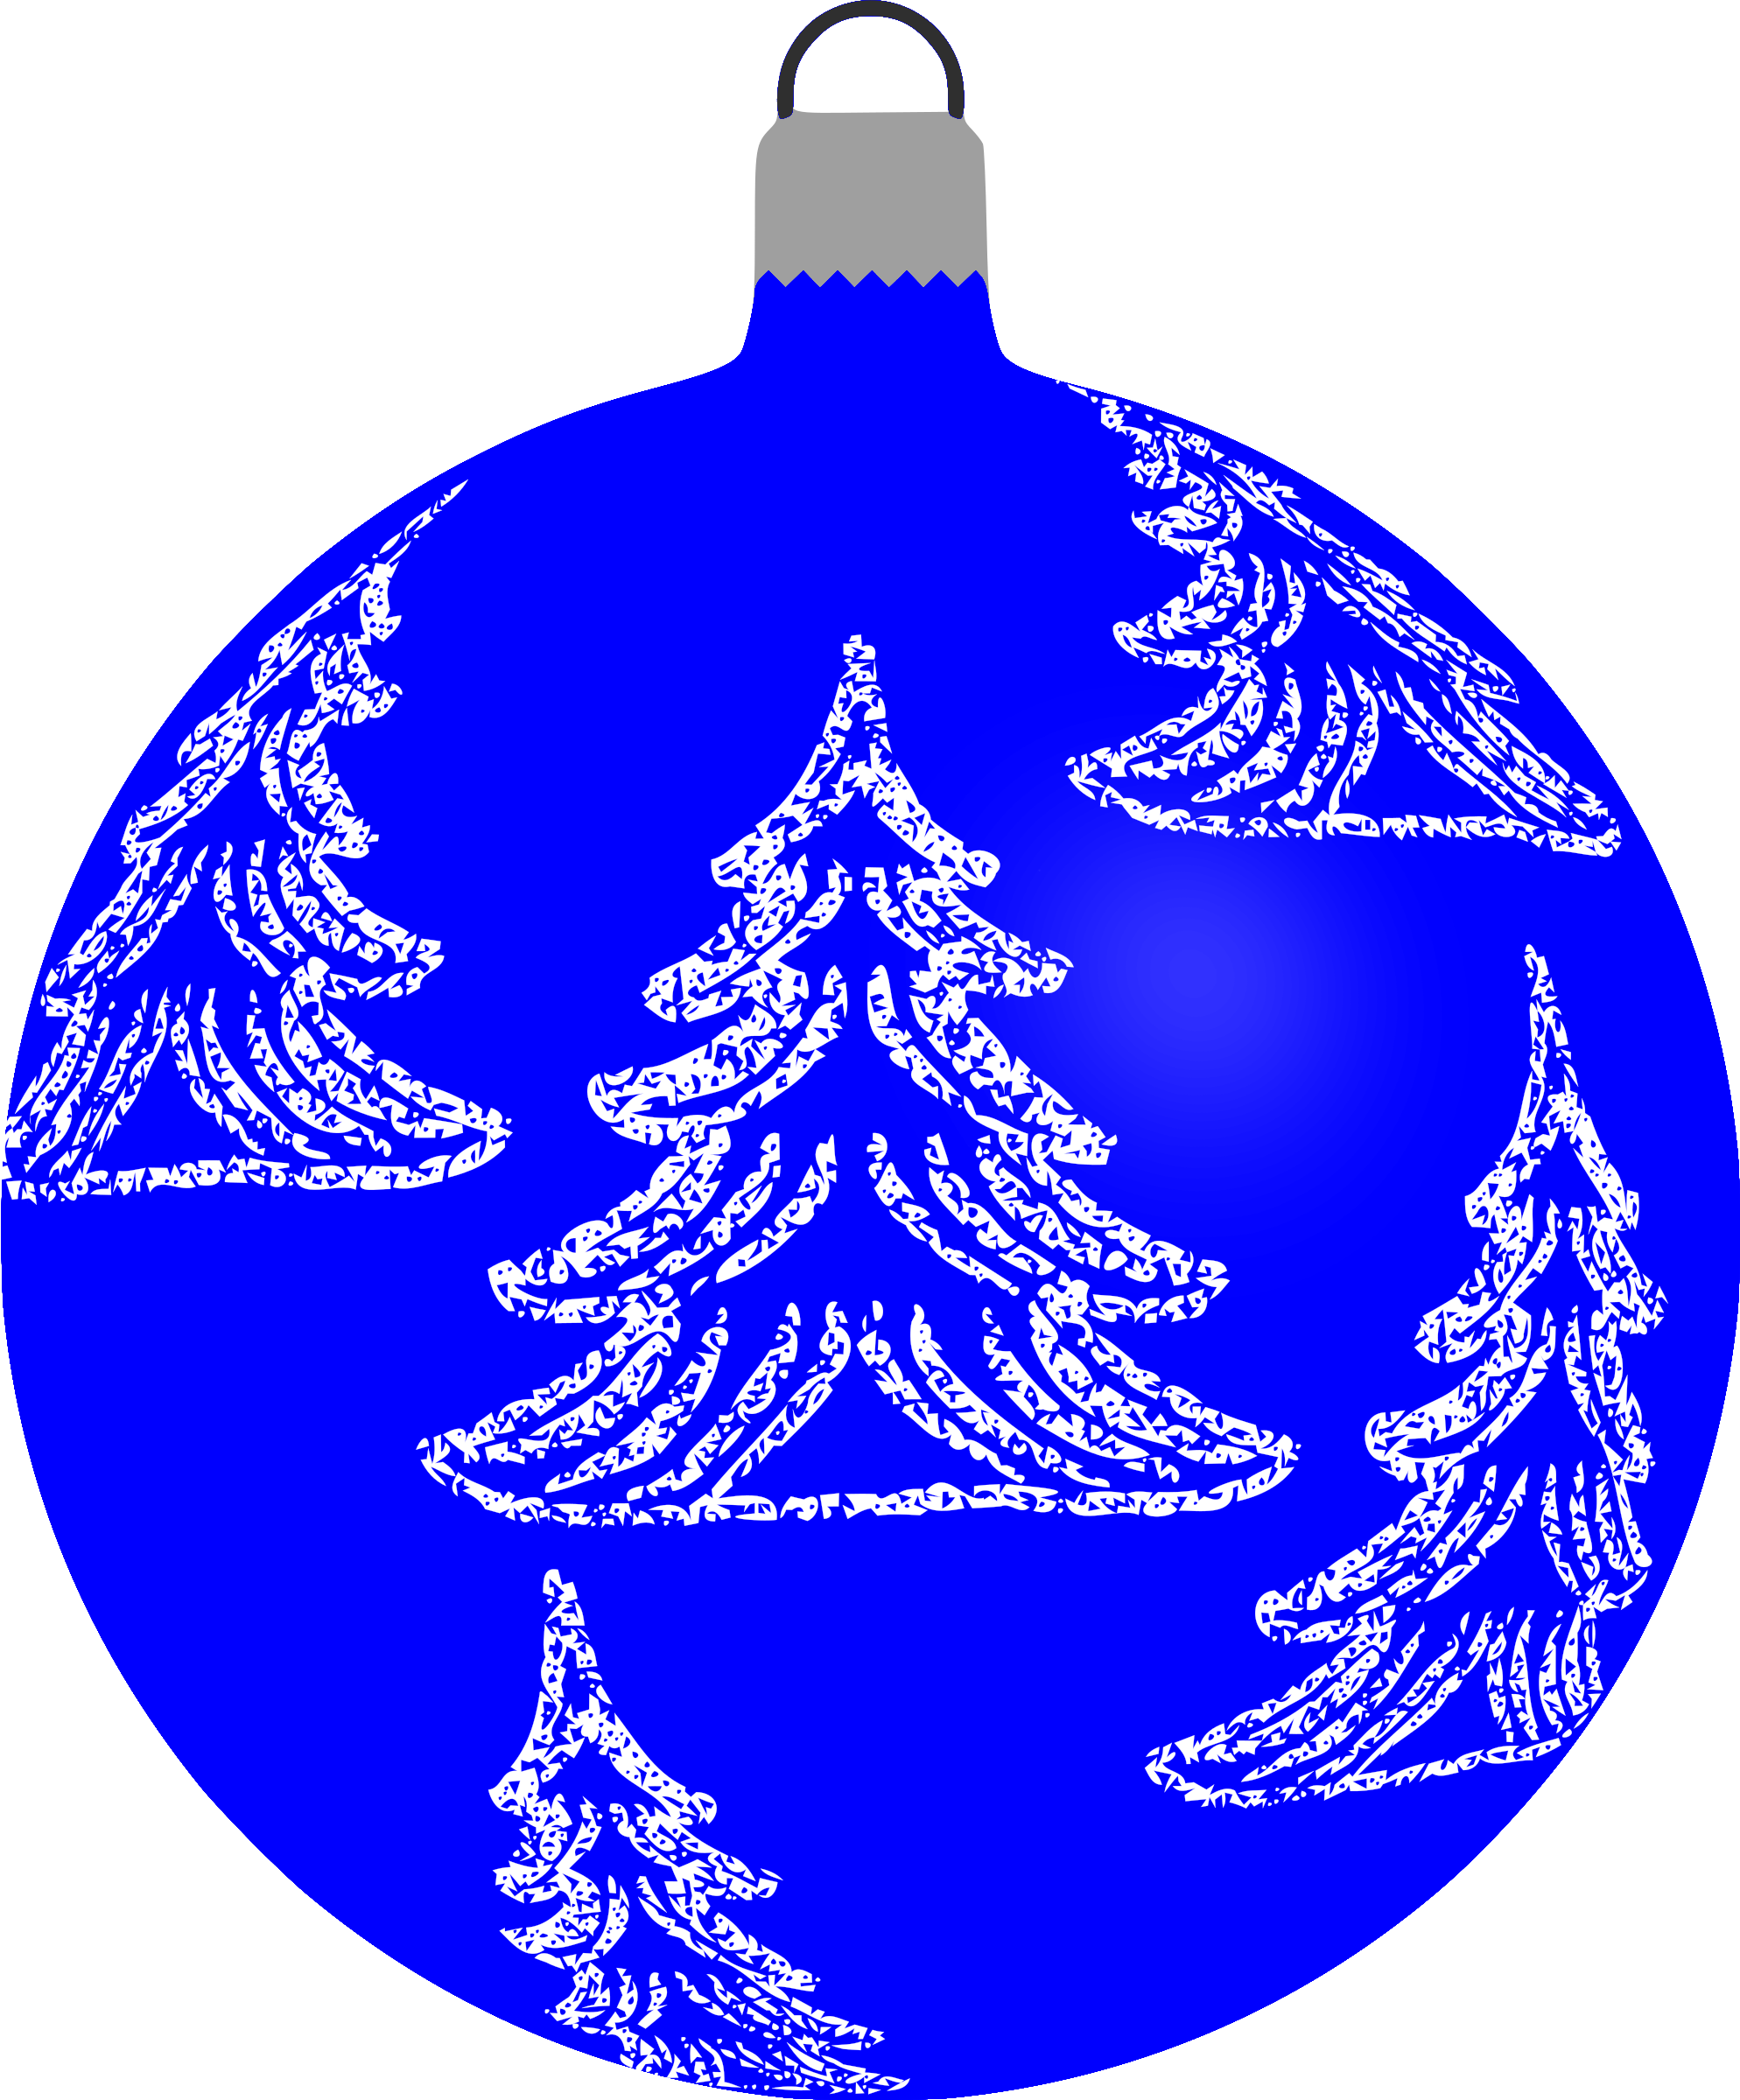 Patterned bauble 6 (blue) by Firkin